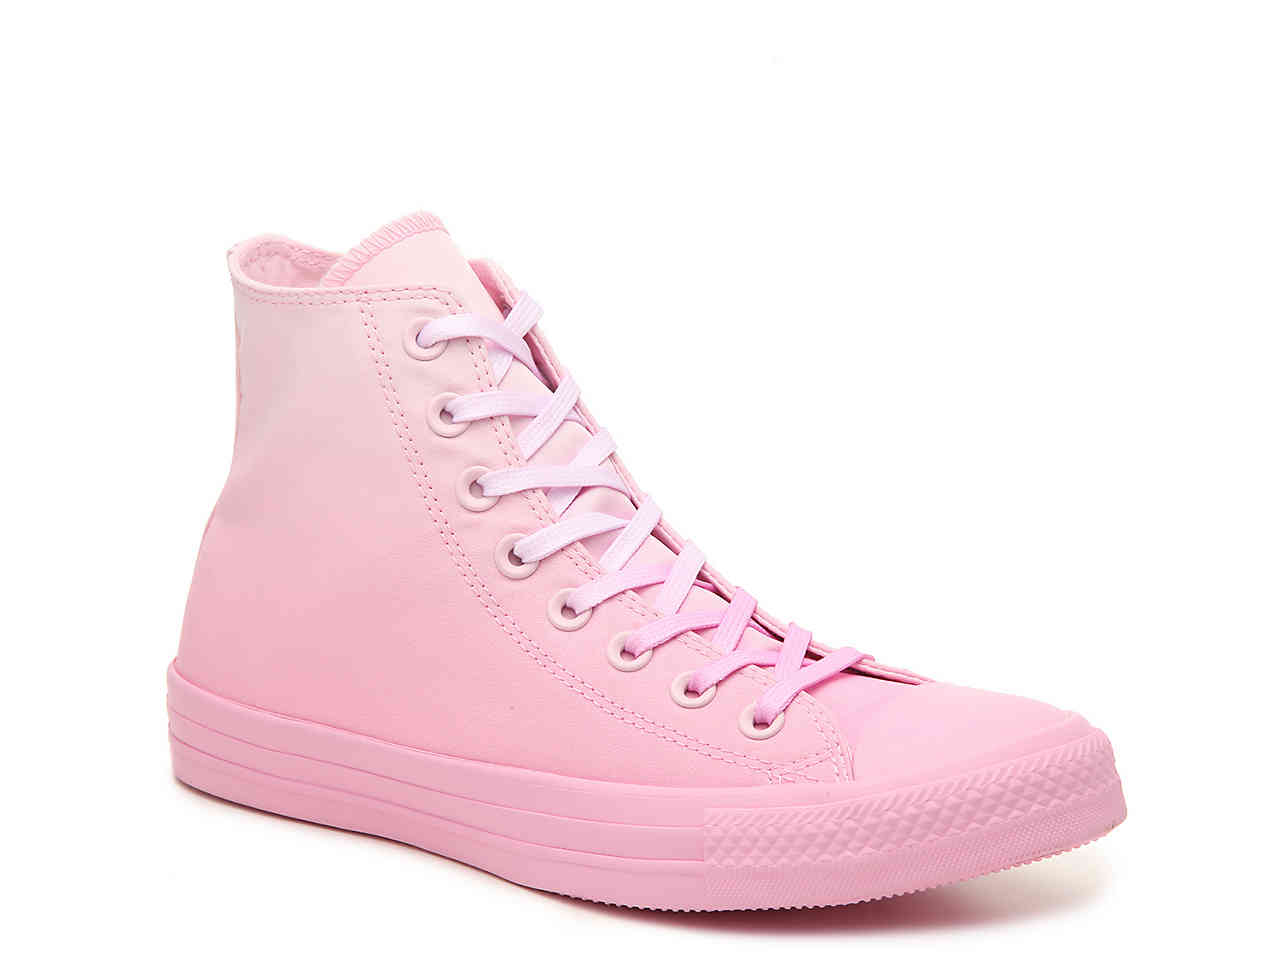 Pink Converse: 22 Pink Converse Shoe Styles for Men and Women